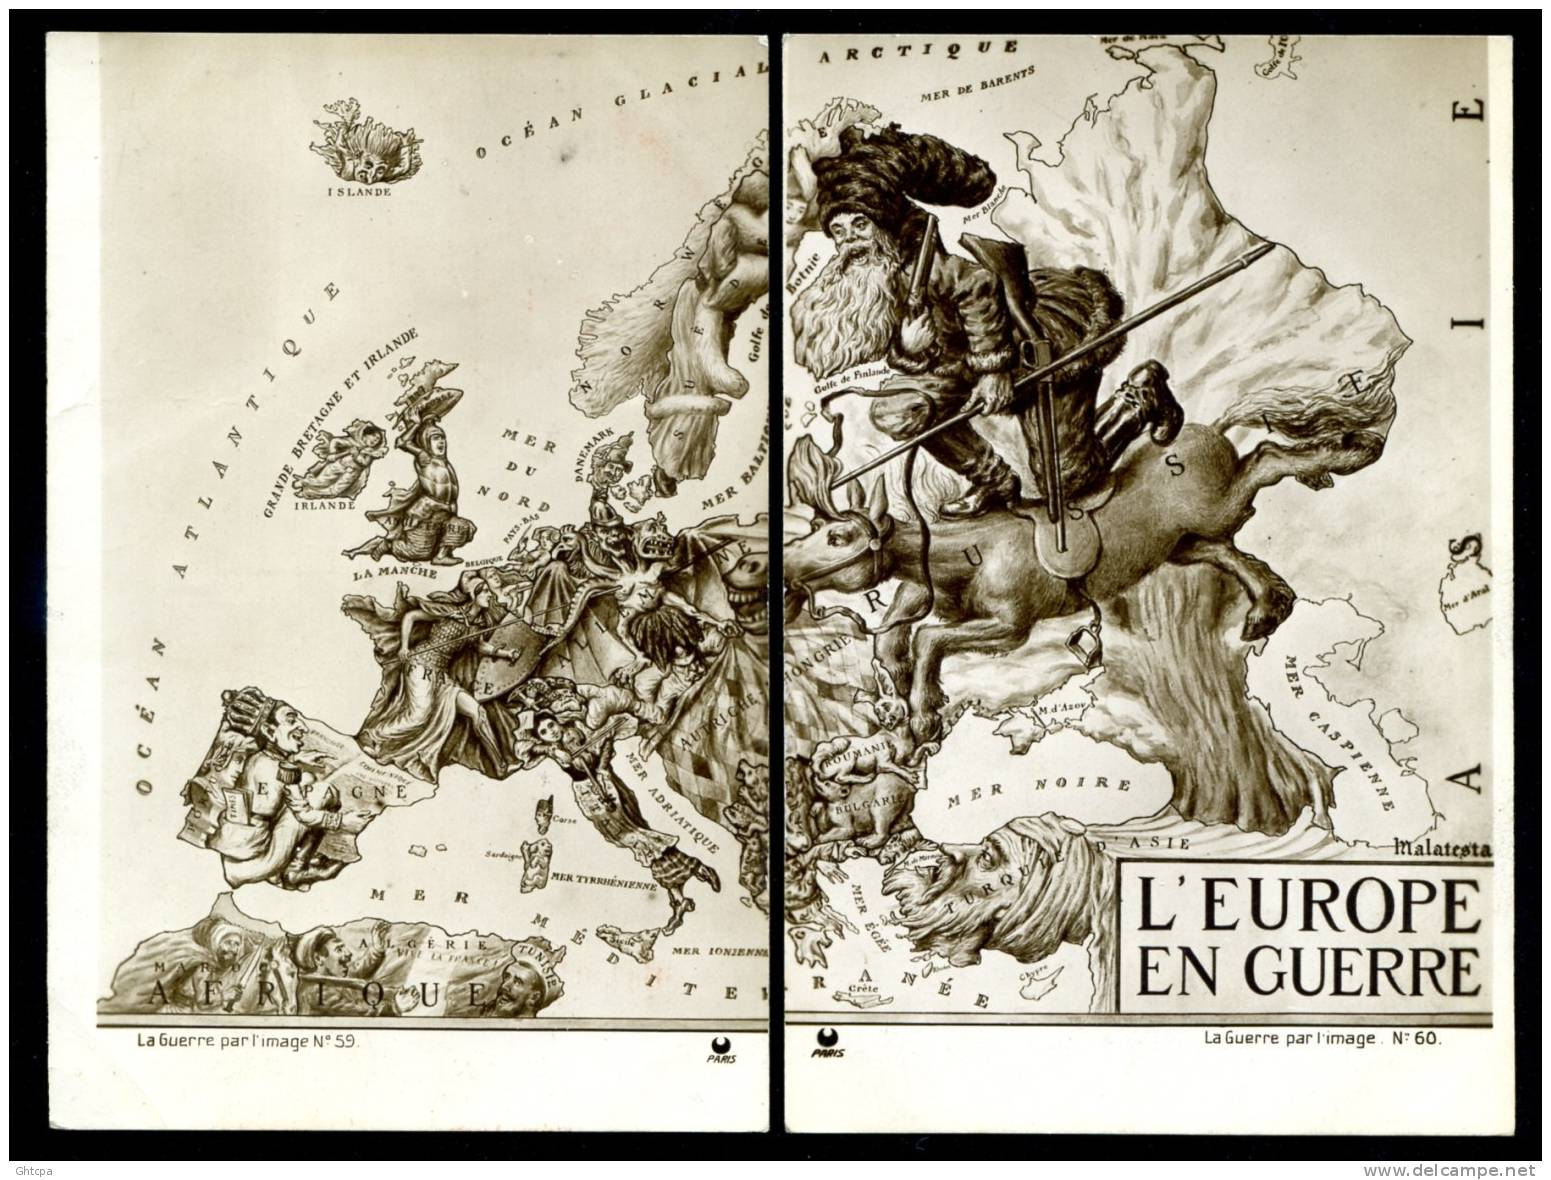 Caricature map of Europe at War (1914)